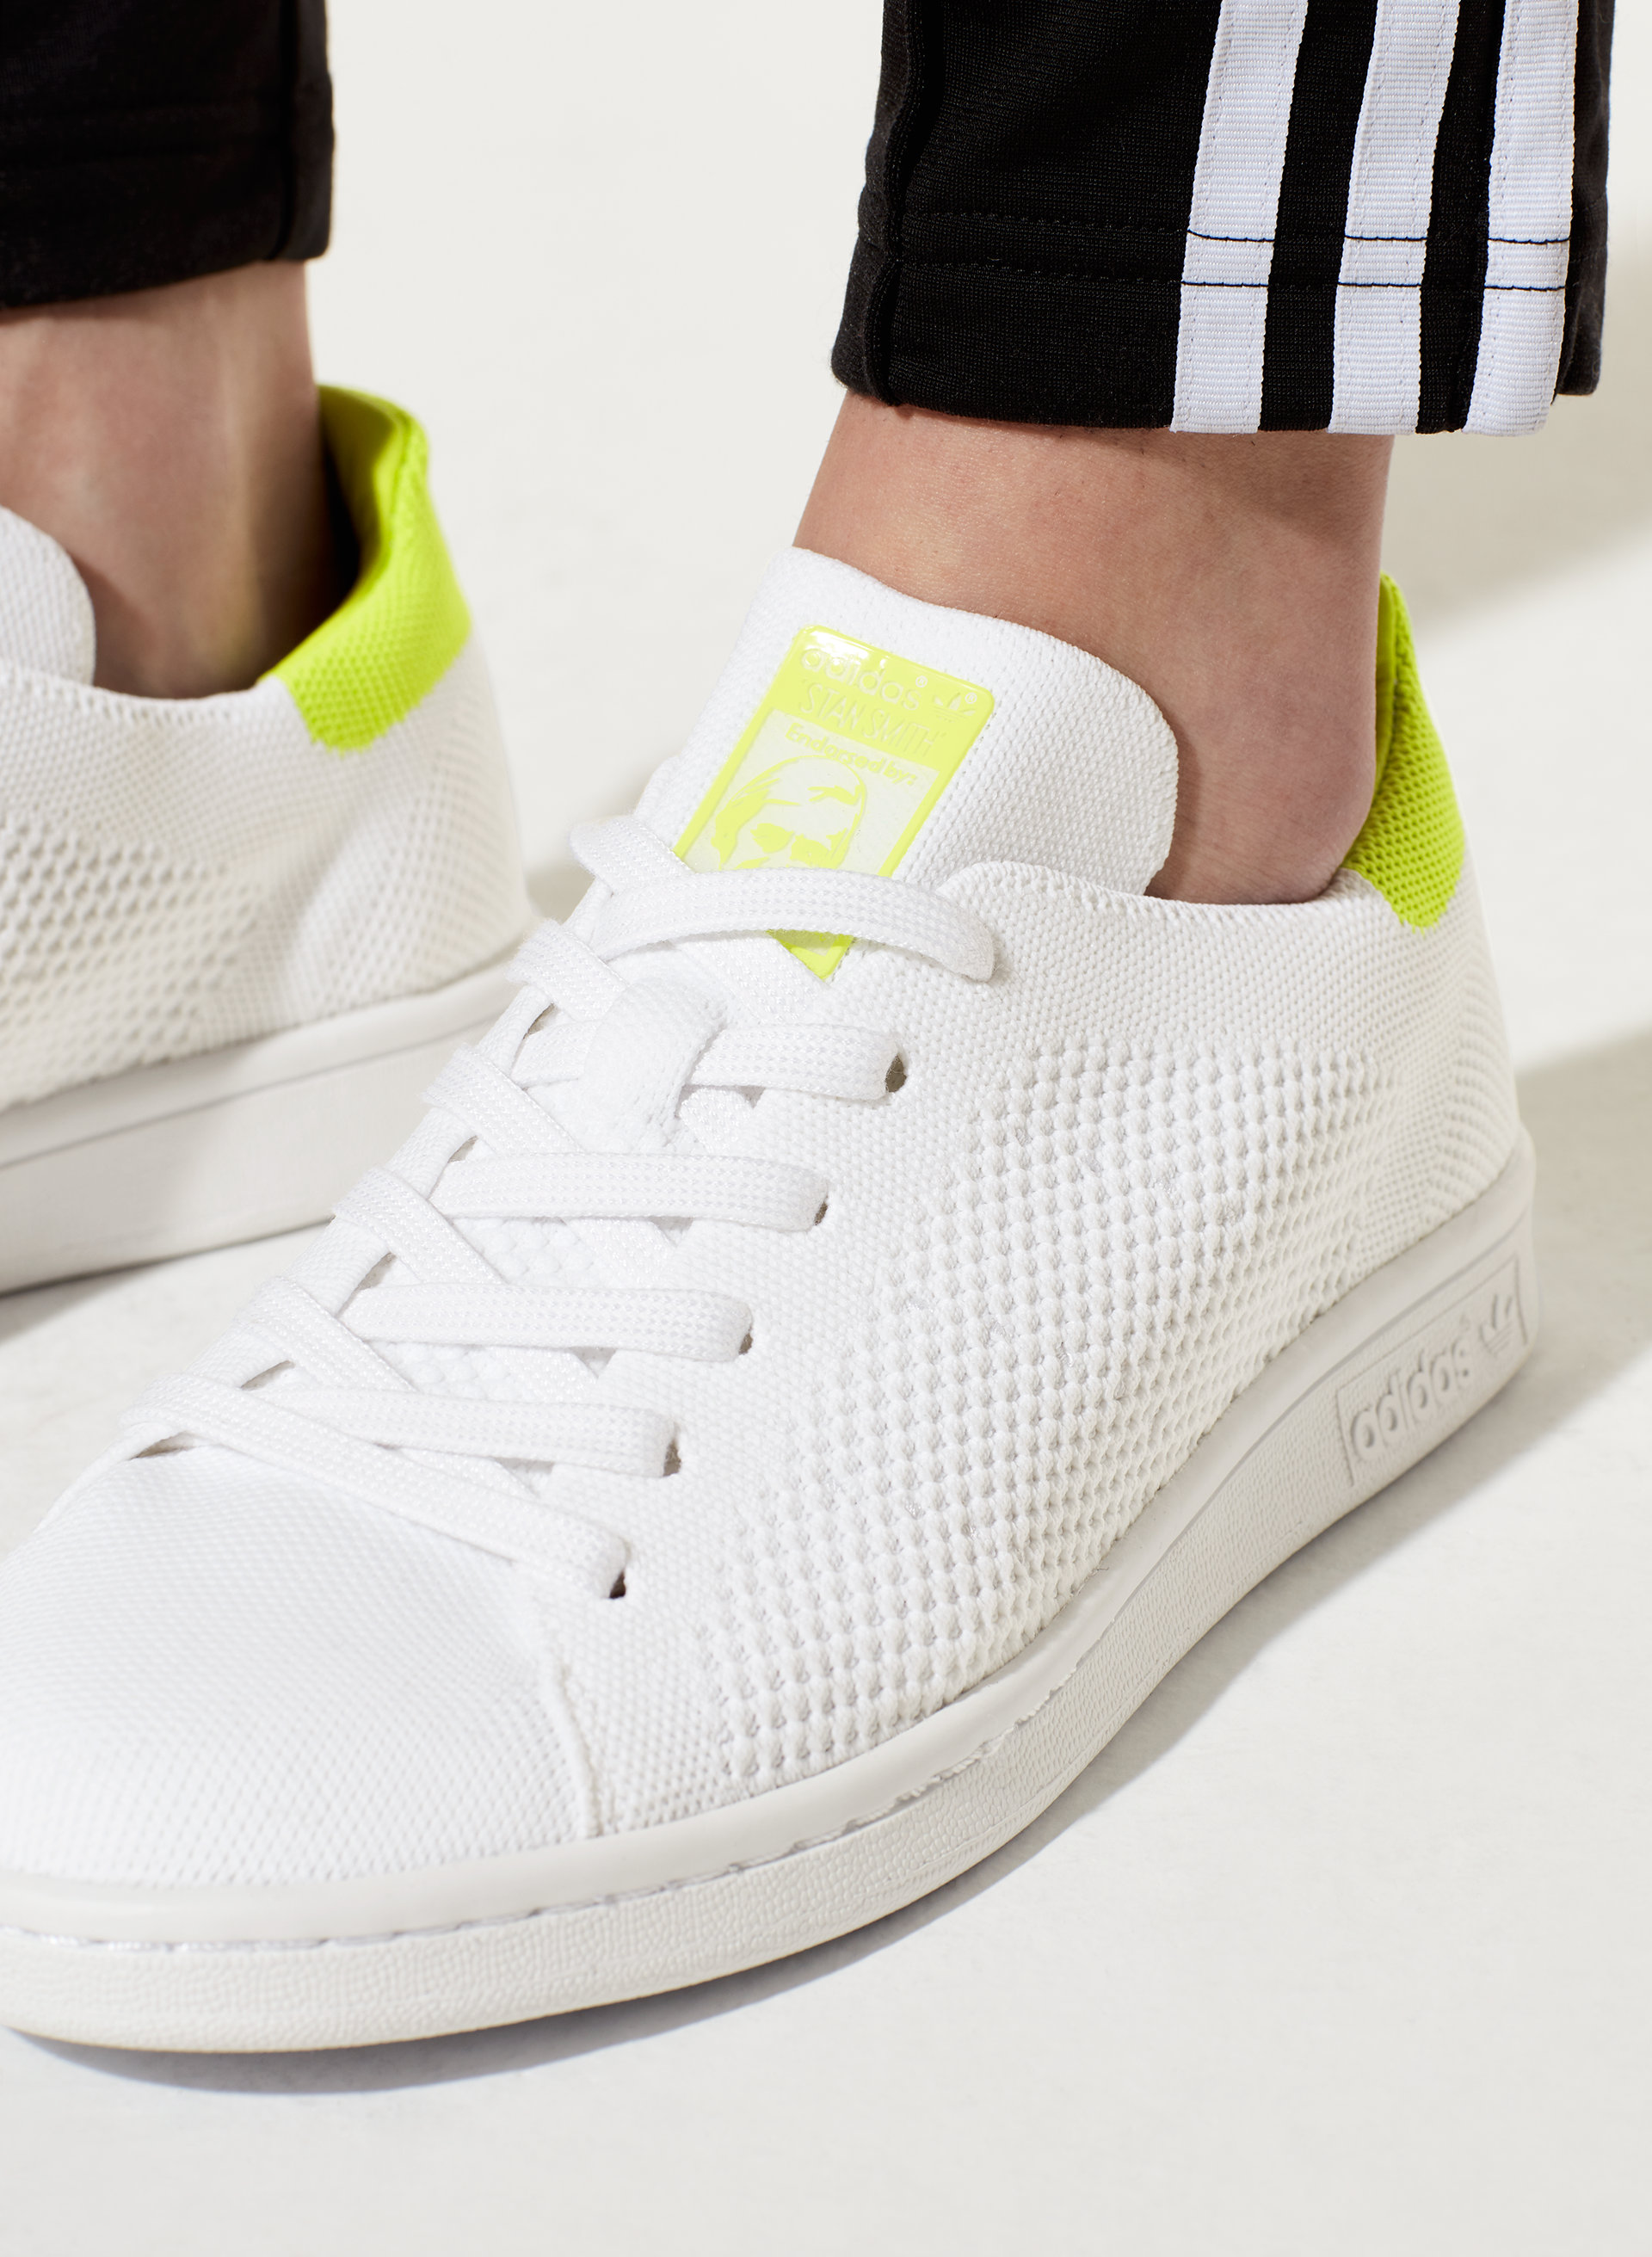 comprare adidas primeknit stan smith > off34%)